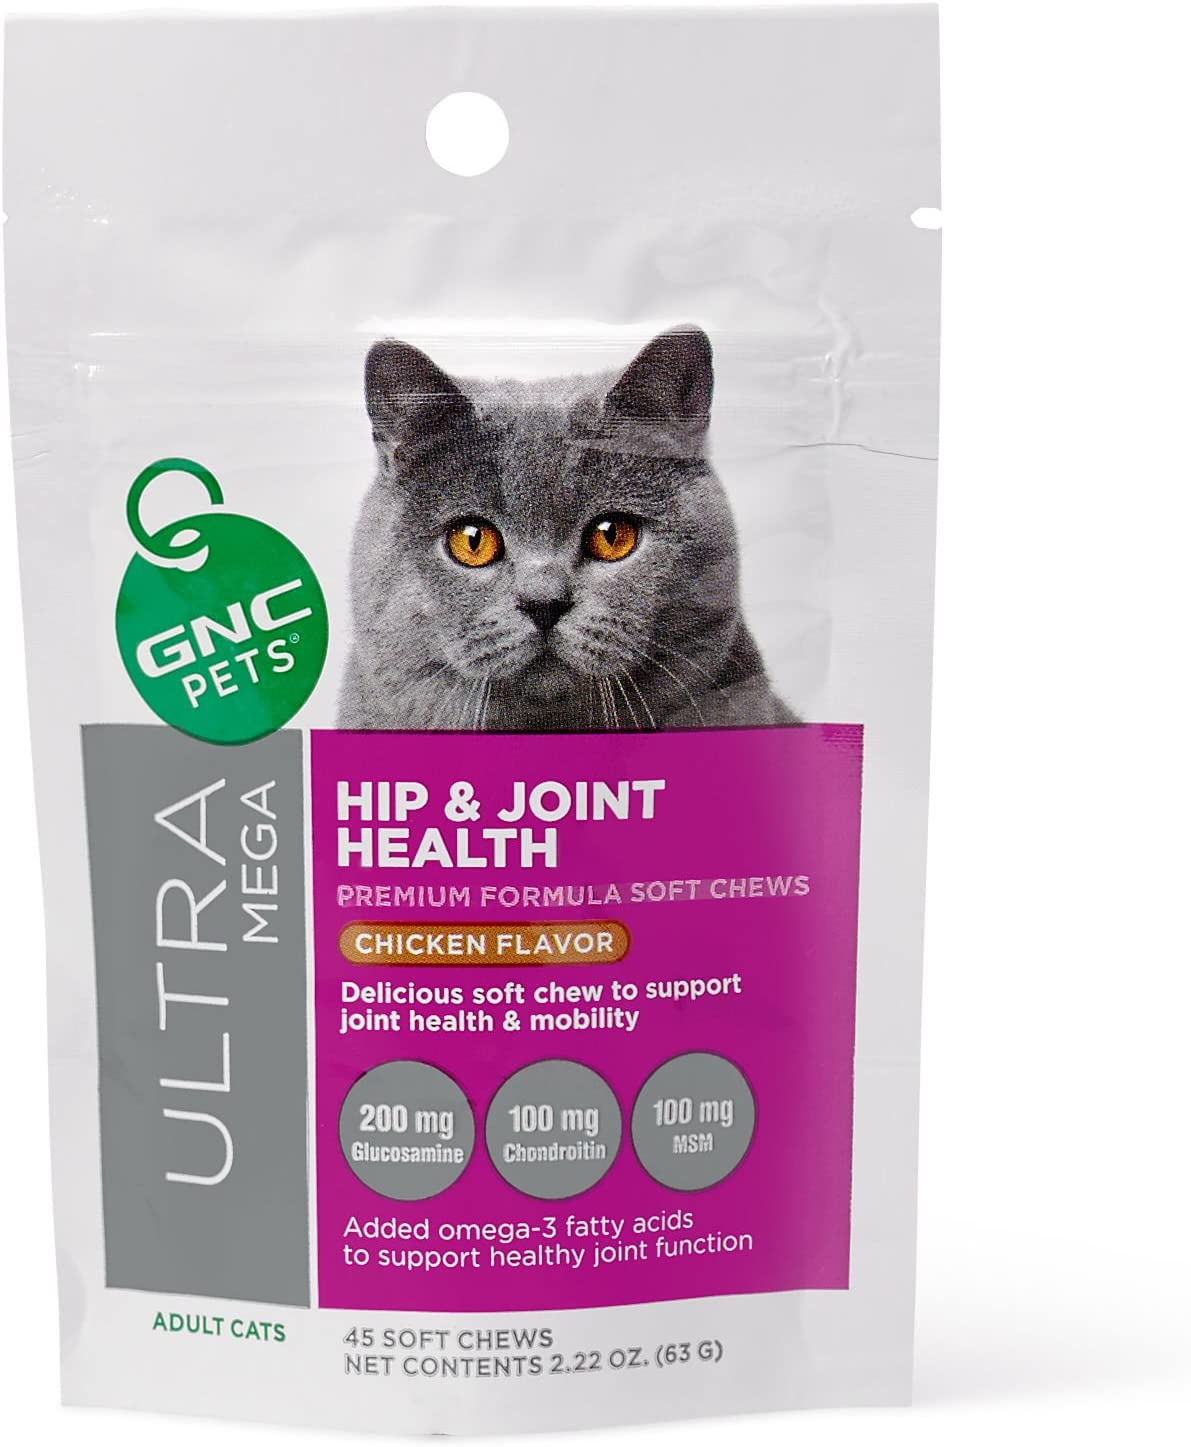 Hip & Joint Health Premium Soft Chews For Adult Cats - 45 count Yummy Chicken Flavor